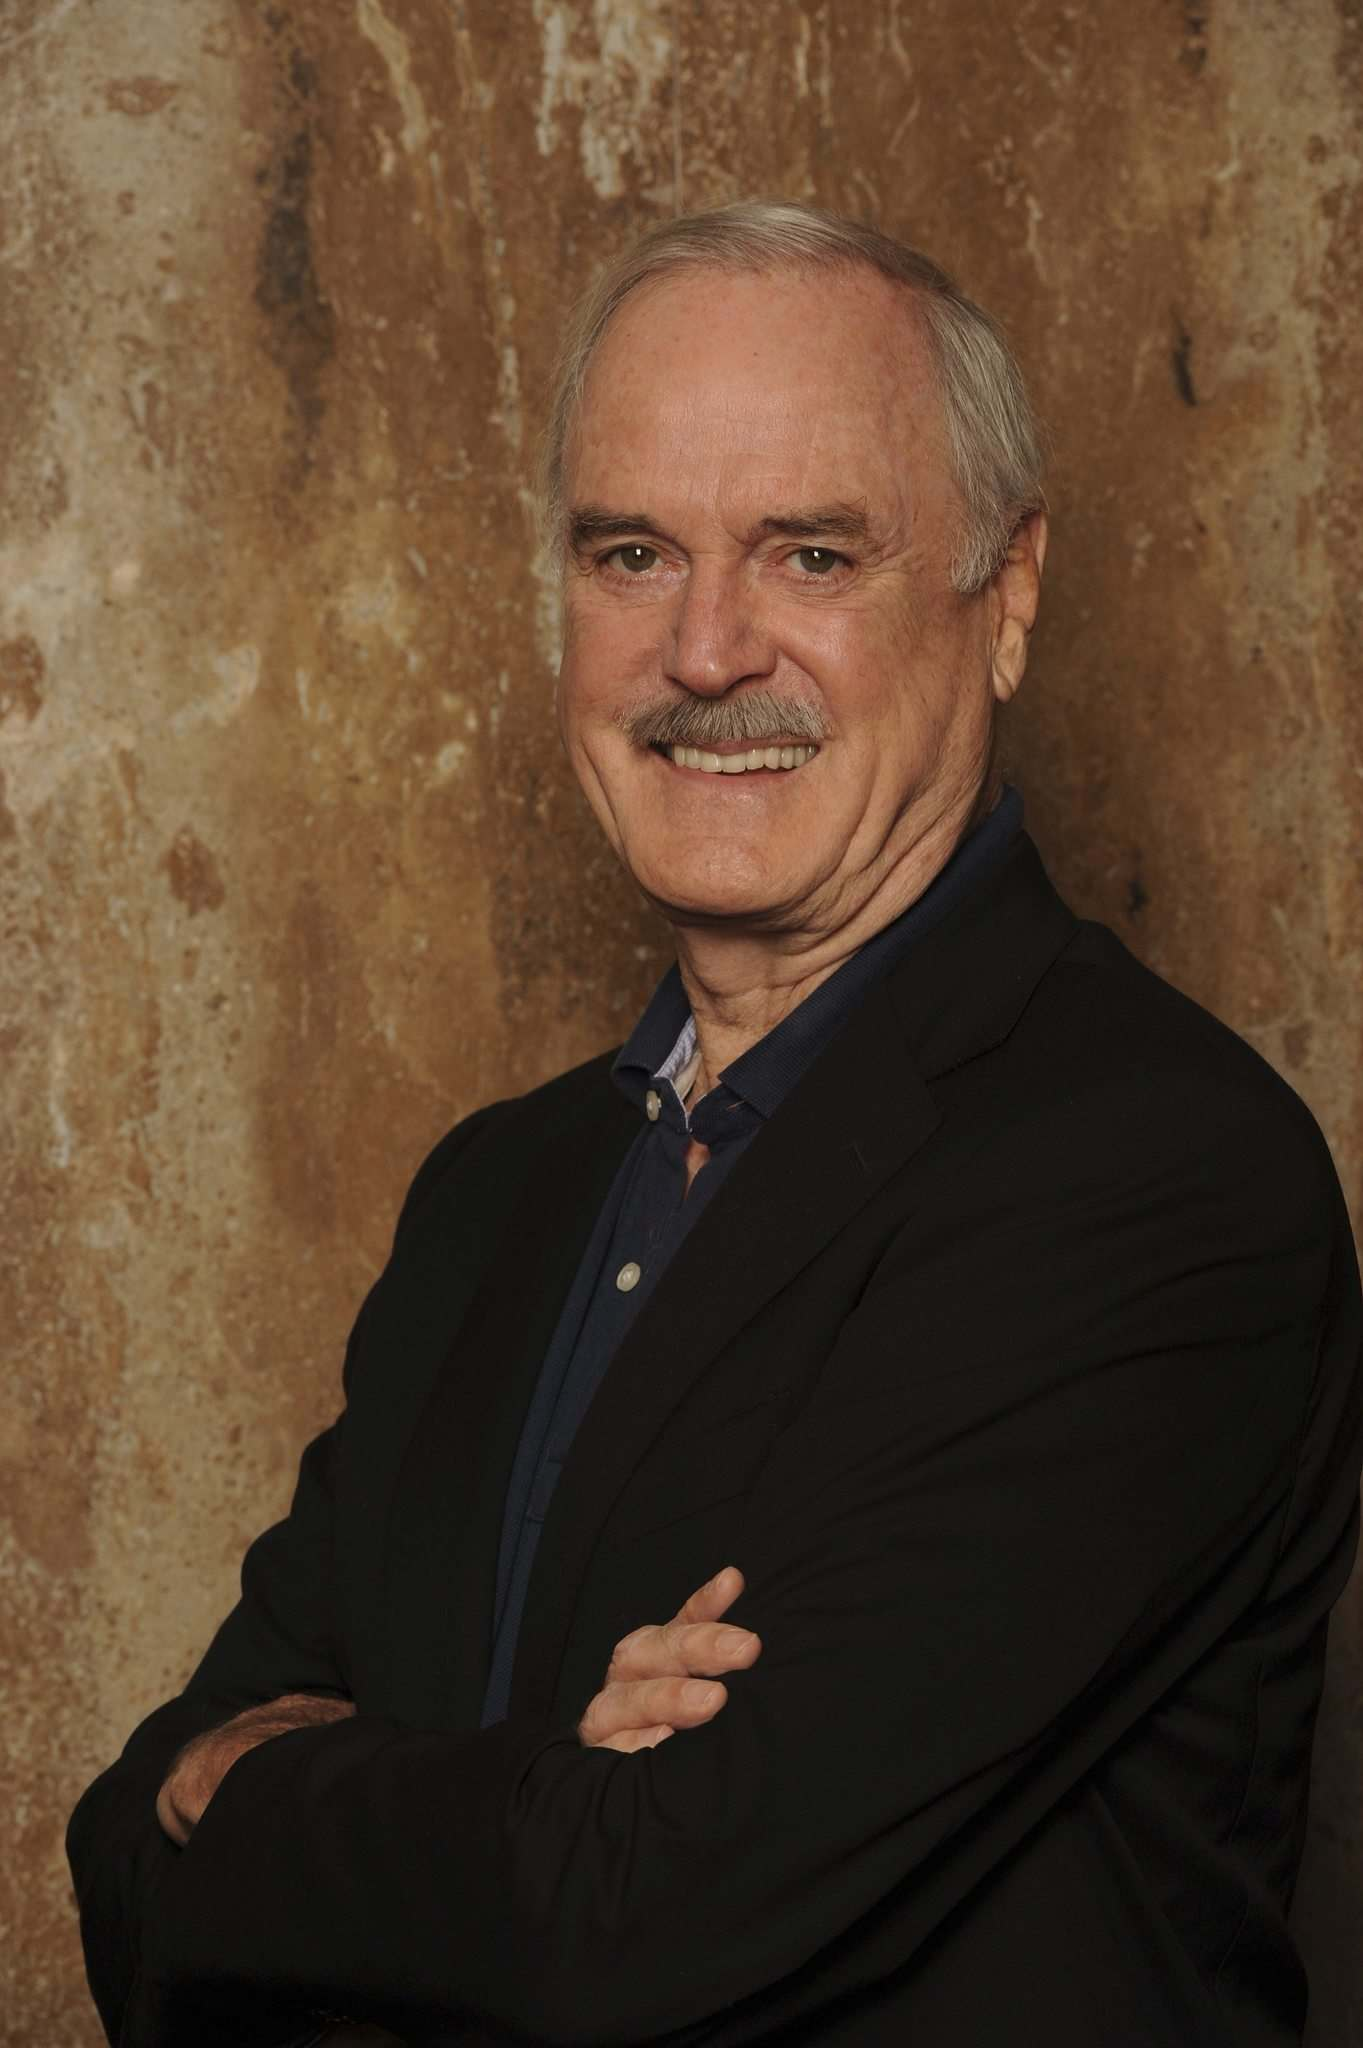 Winnipeg gets another chance to see John Cleese create humour out of life